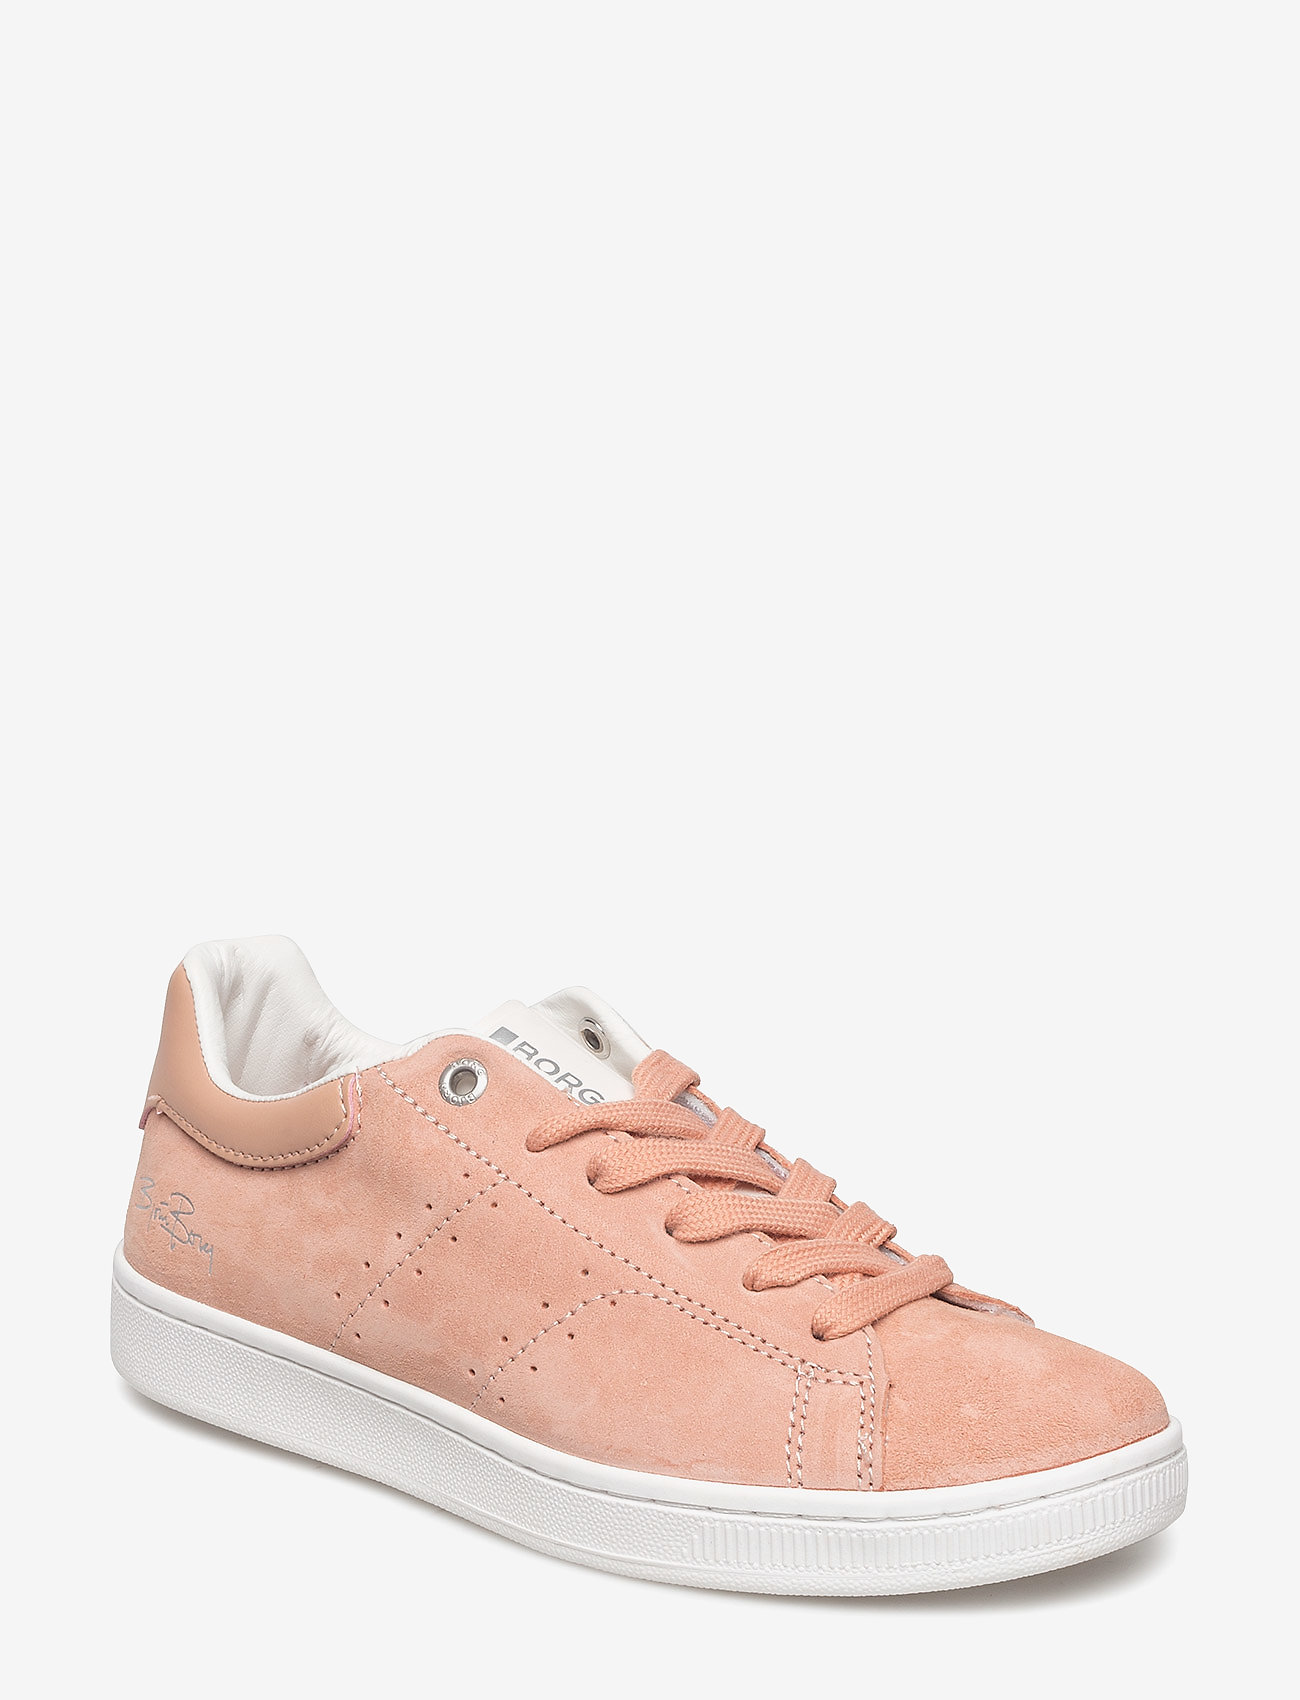 Björn Borg - T340 Low Wsh W - low top sneakers - light pink - 0